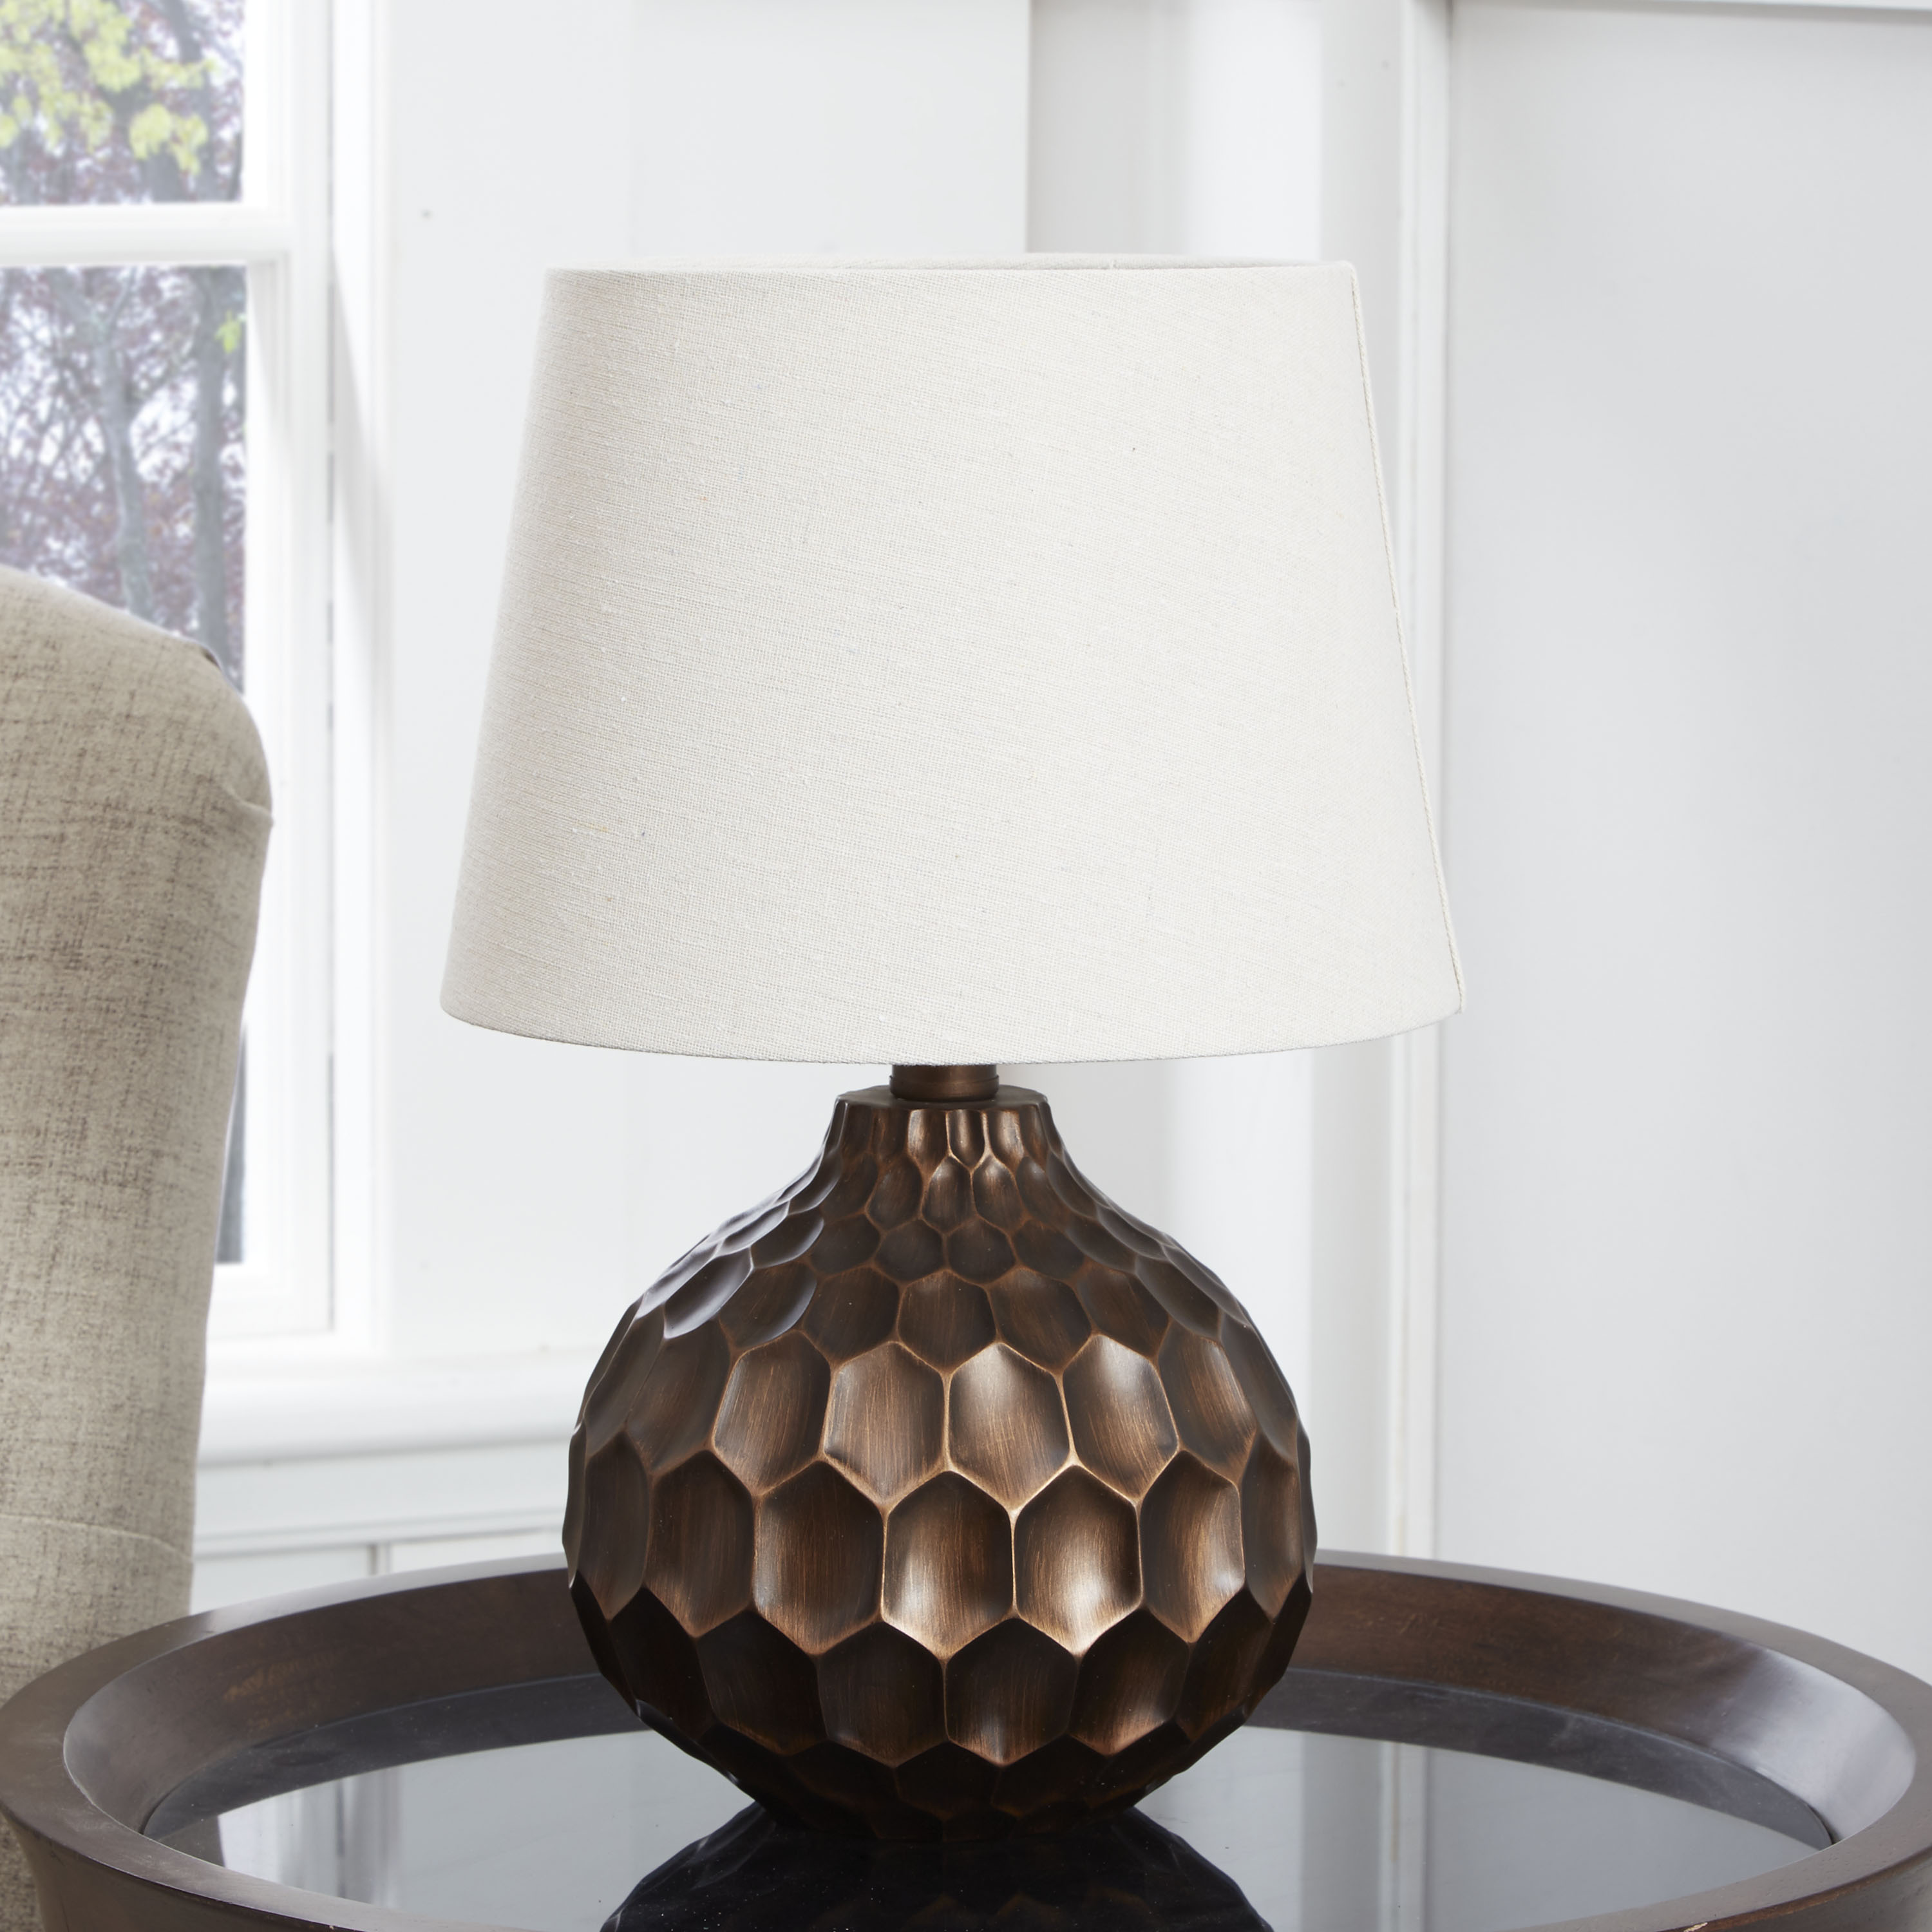 Decor Therapy Faceted Table Lamp with Linen Shade